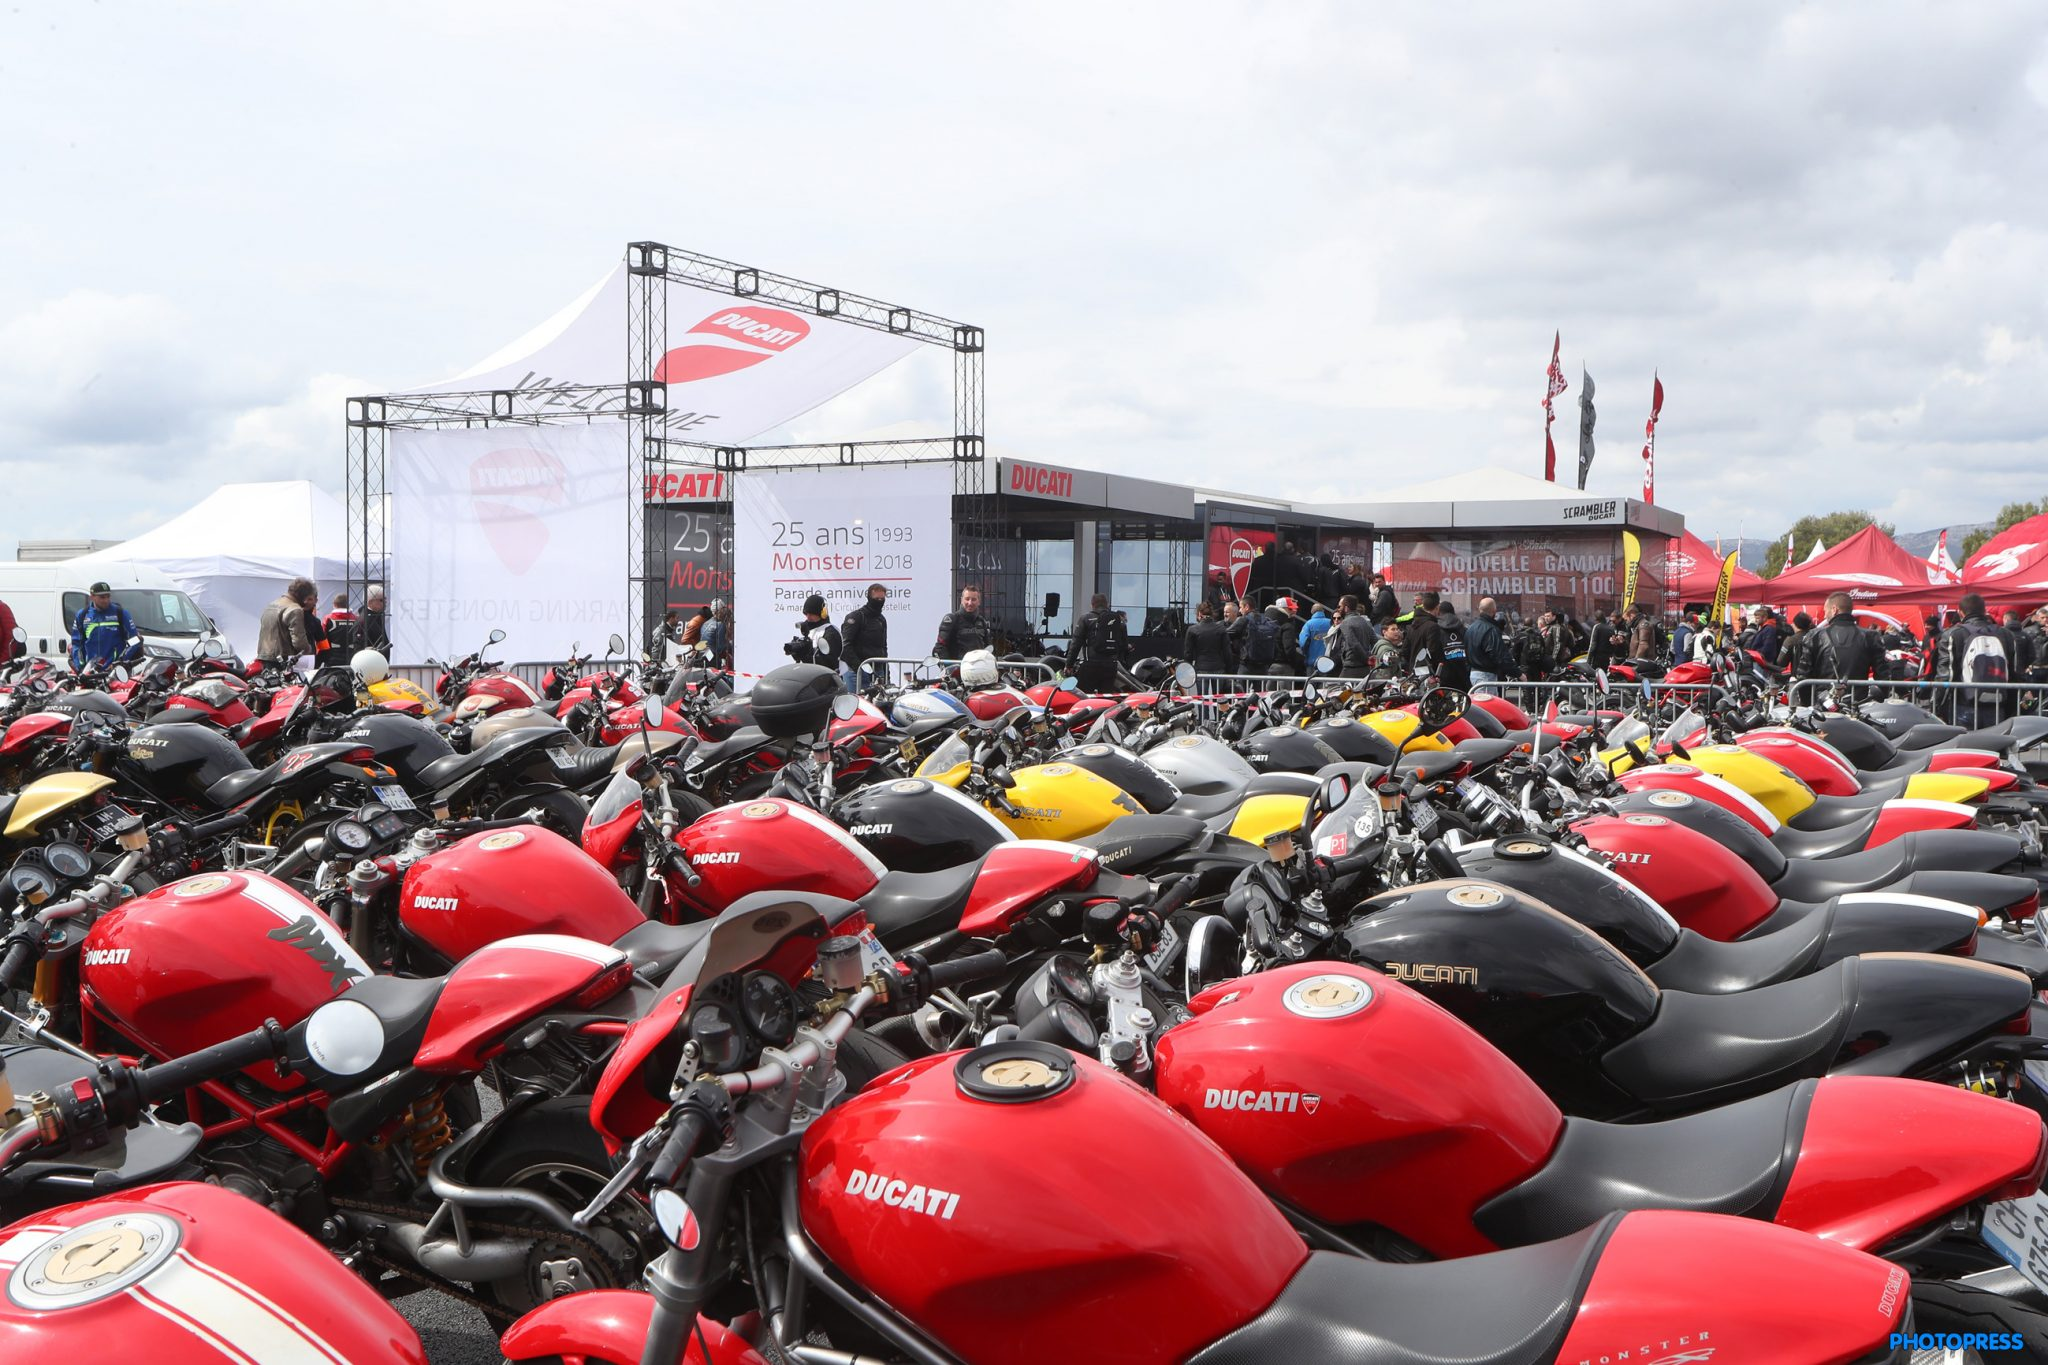 Ducati Monster Parade in Paul Ricard sets a new record!